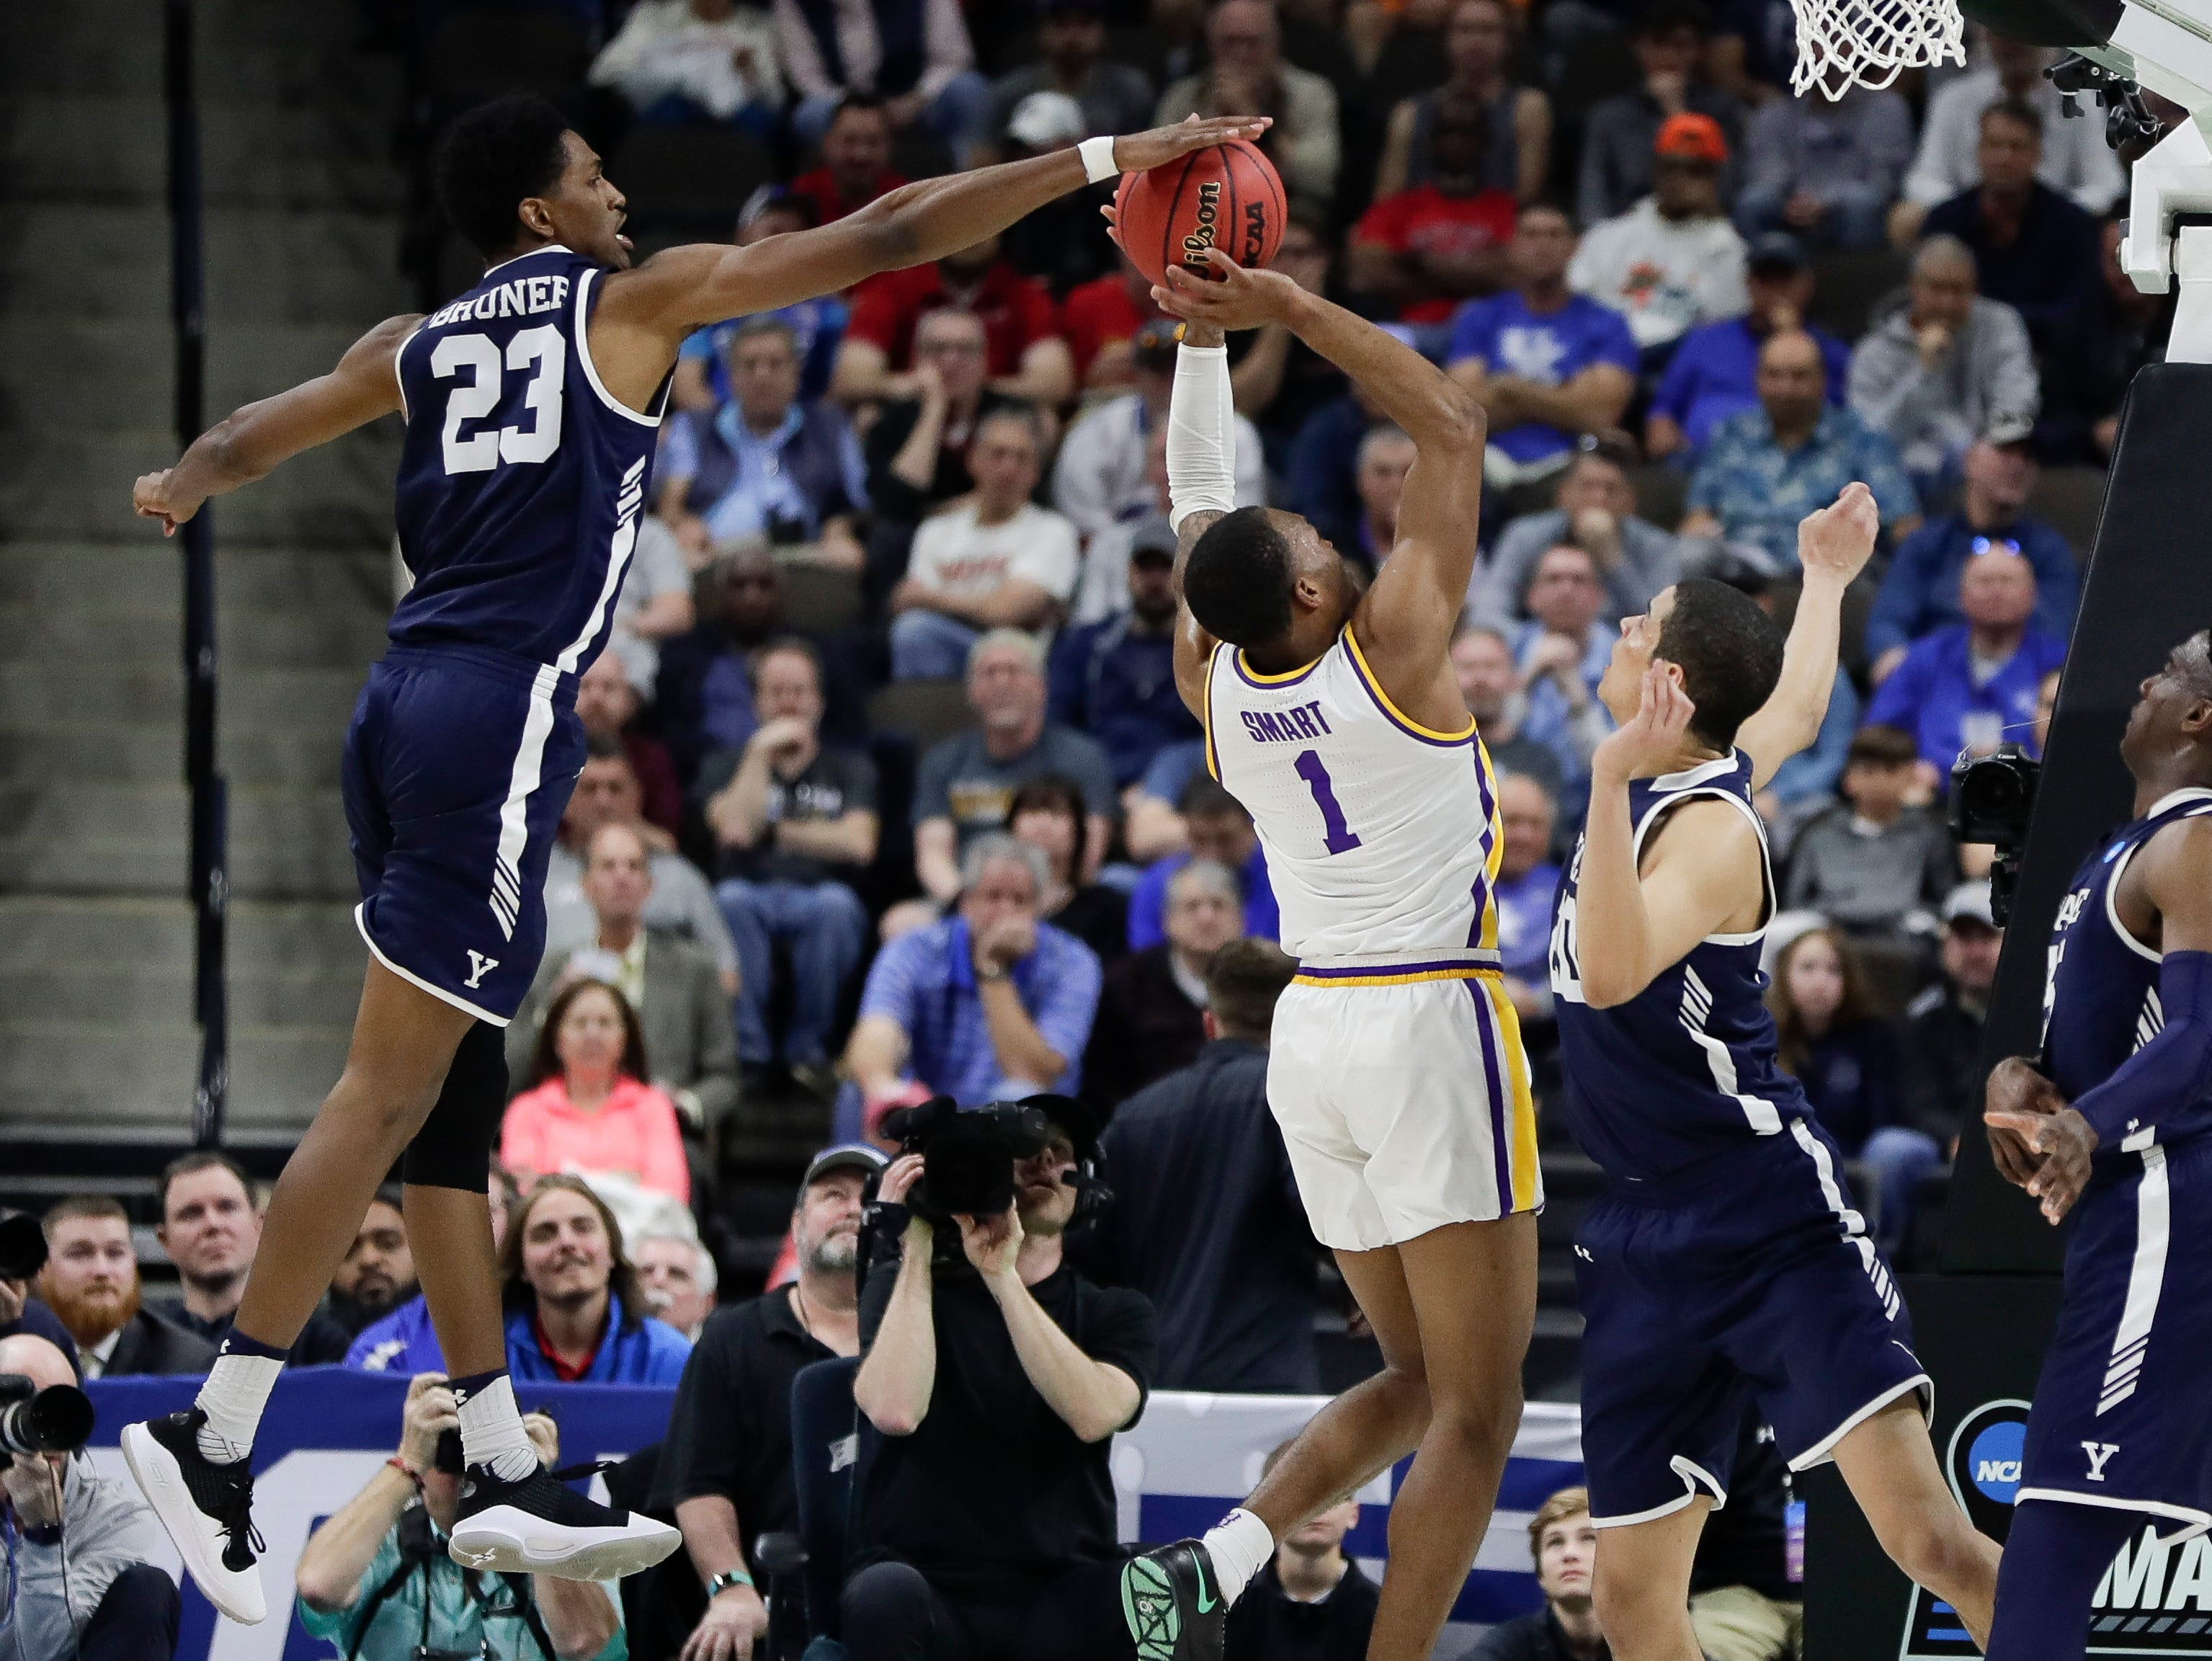 Yale forward Jordan Bruner (23) blocks a shot attempt by LSU's Javonte Smart (1) during the second half of a first round men's college basketball game in the NCAA Tournament, in Jacksonville, Fla. Thursday, March 21, 2019. (AP Photo/John Raoux)